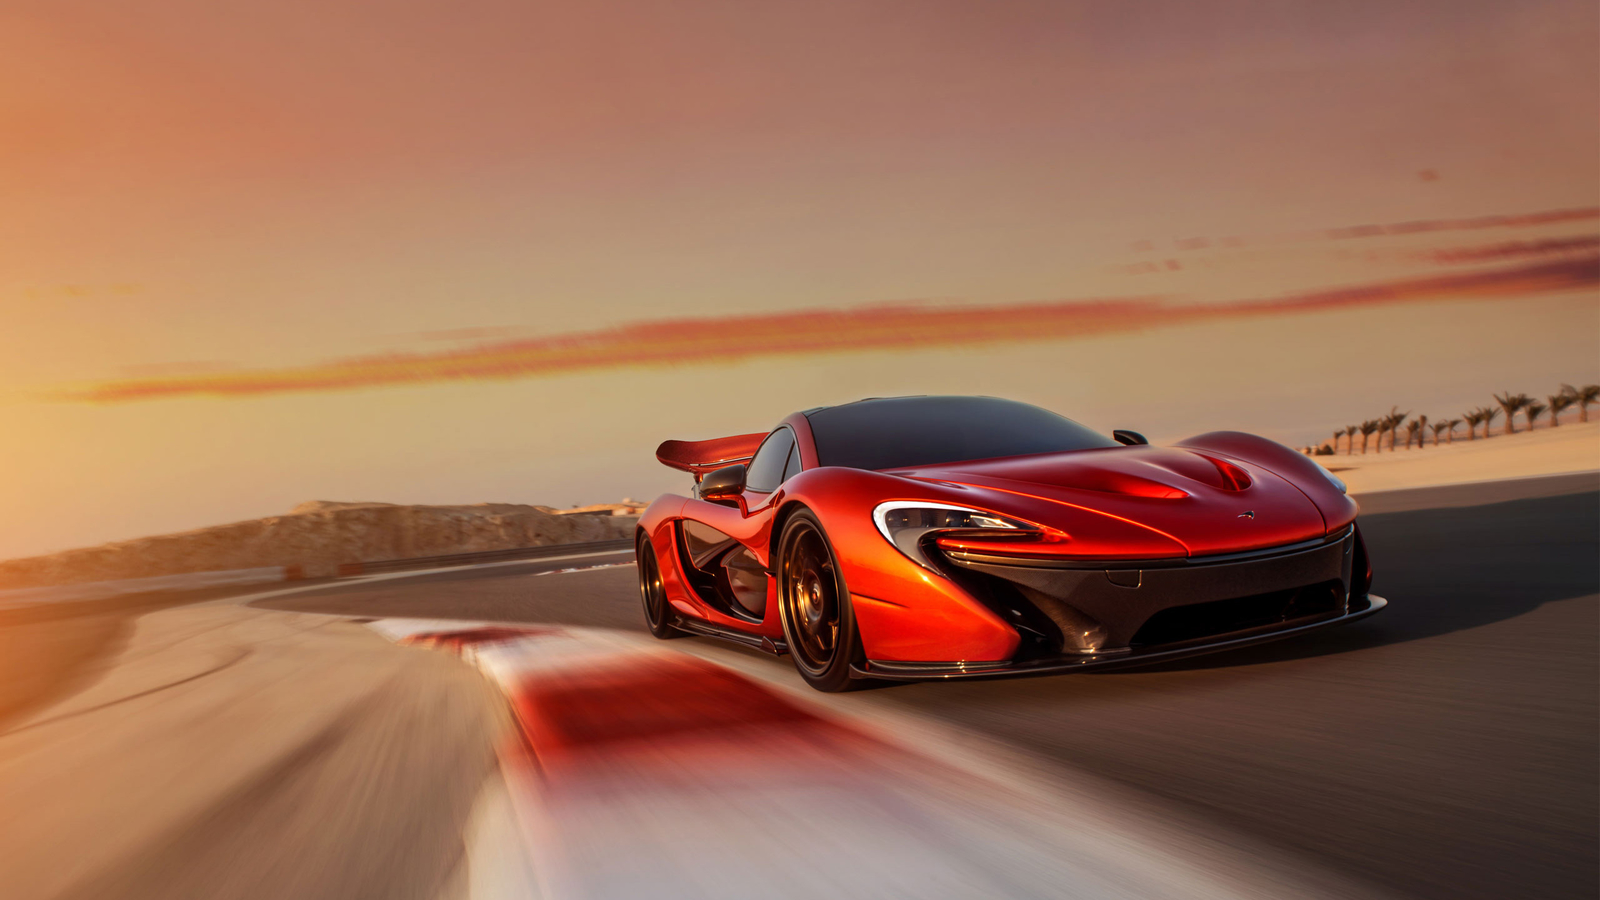 McLaren supercar wallpaper download 49668